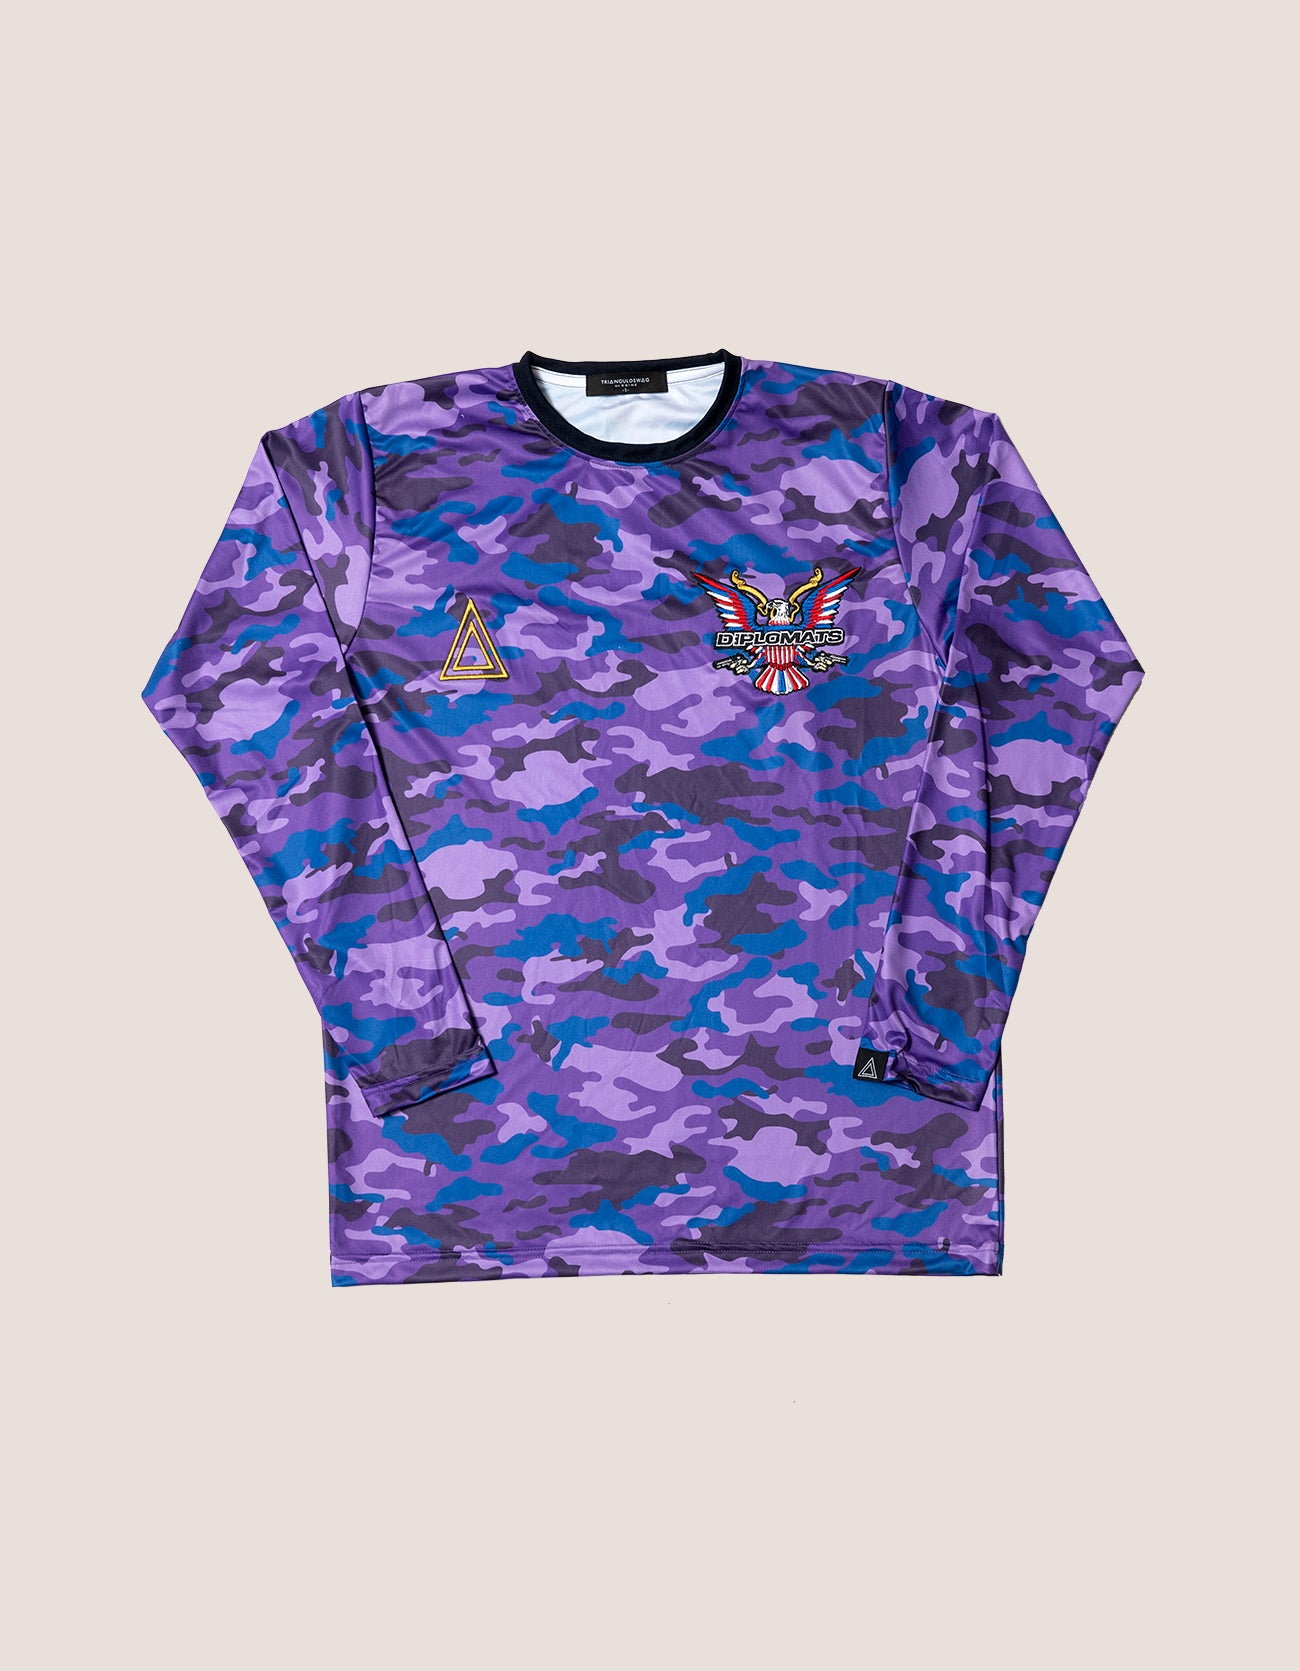 TRI x KiLLA Purple Camo Long Sleeve soccer jersey